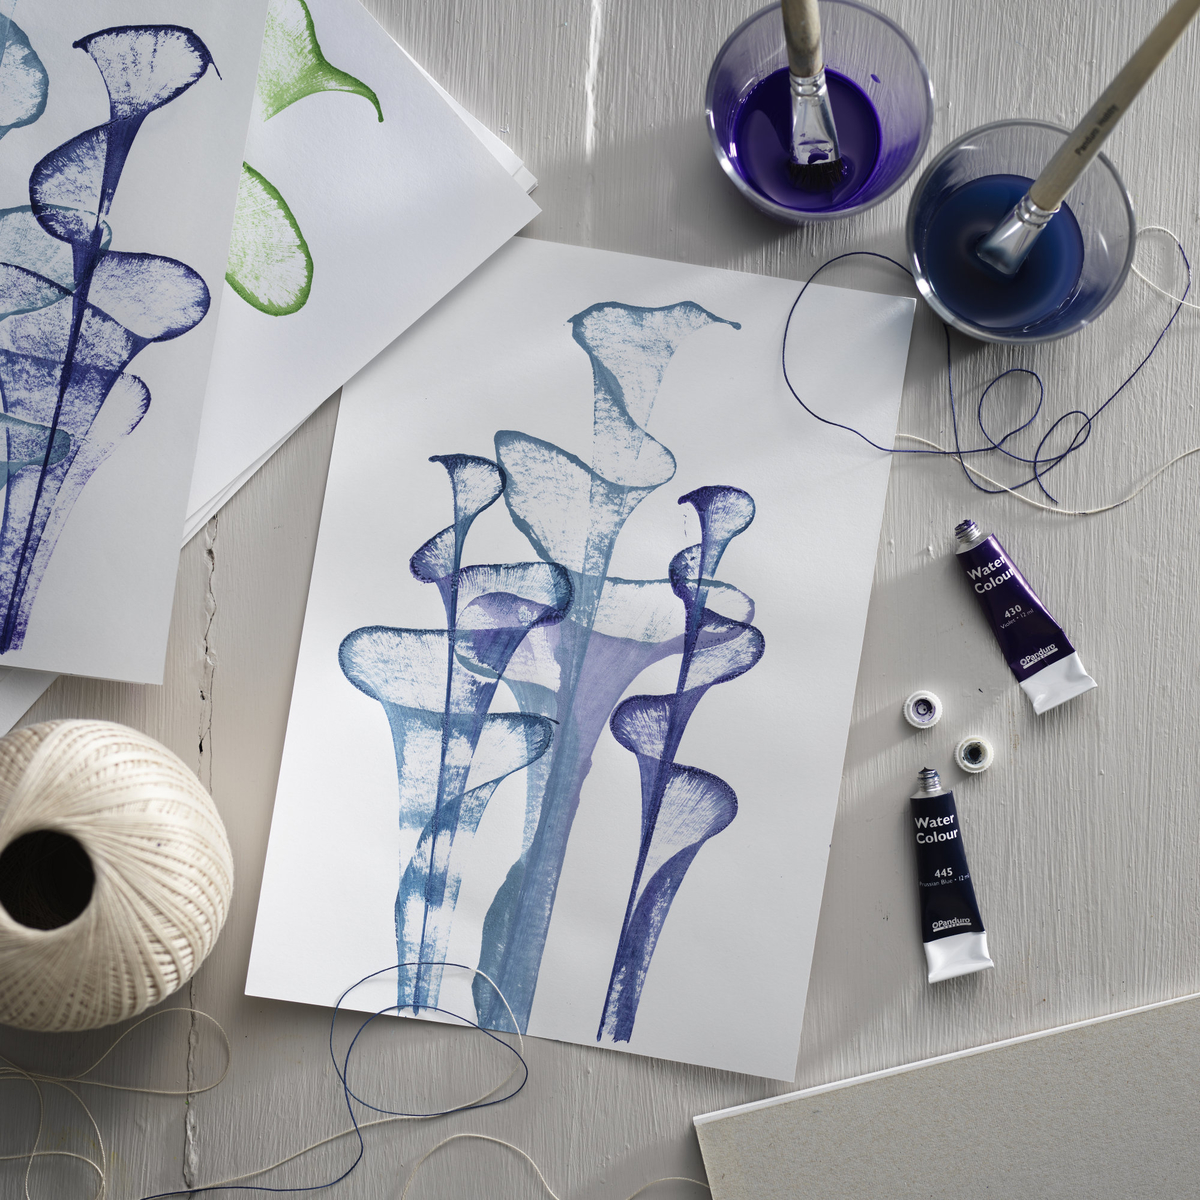 Watercolour painting with string